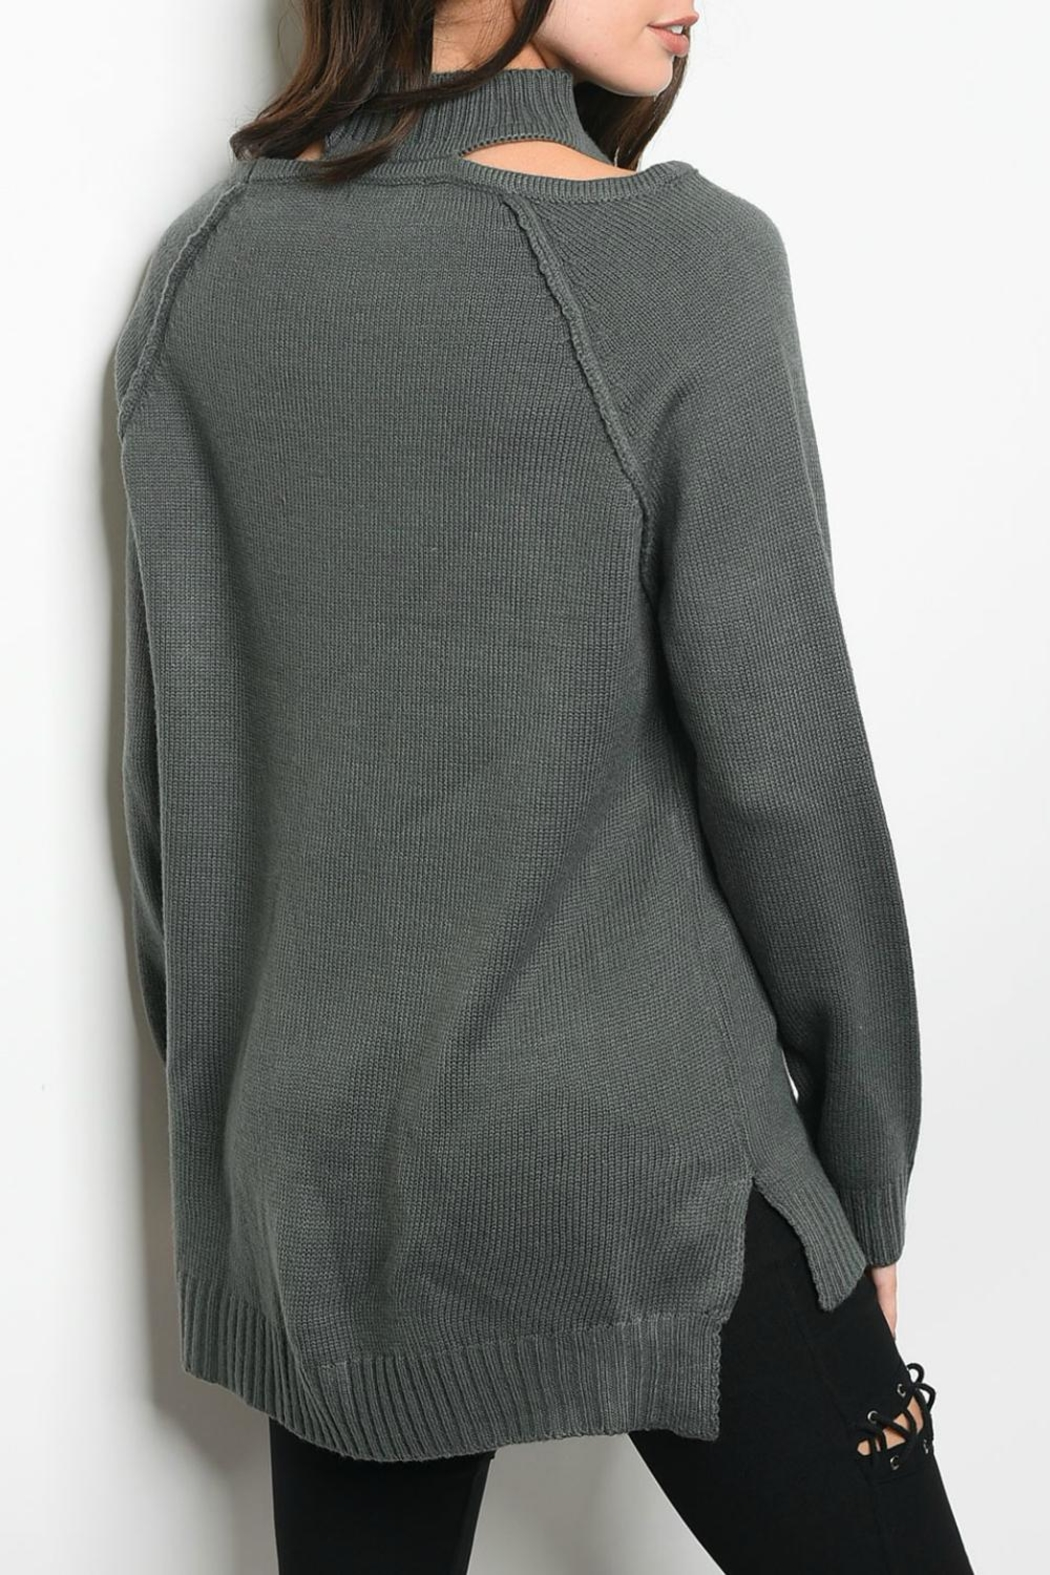 LoveRiche Charcoal Sweater - Front Full Image